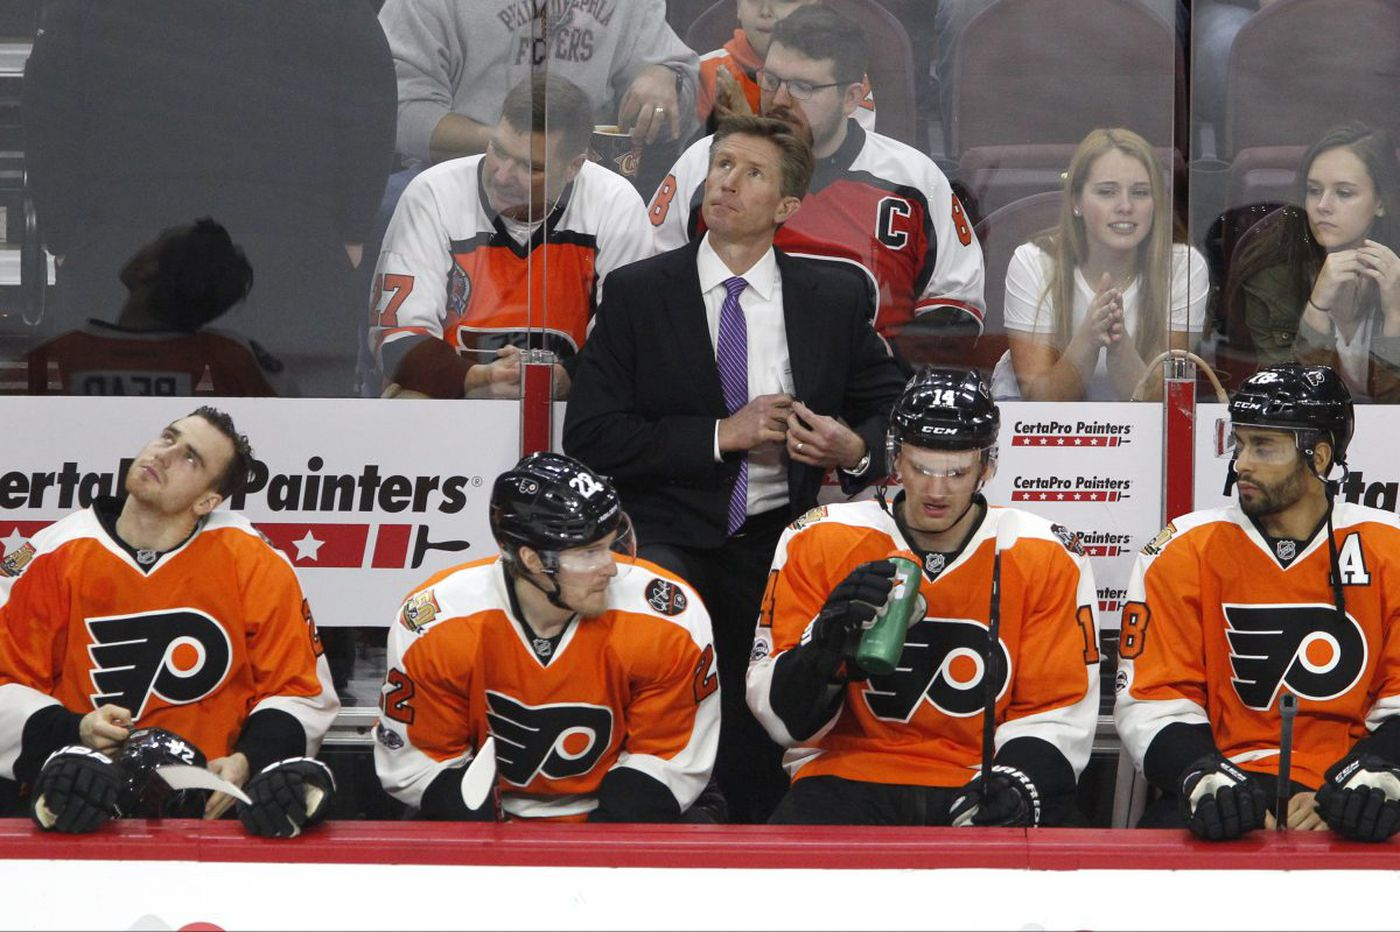 Flyers finding that character does not equate to consistency